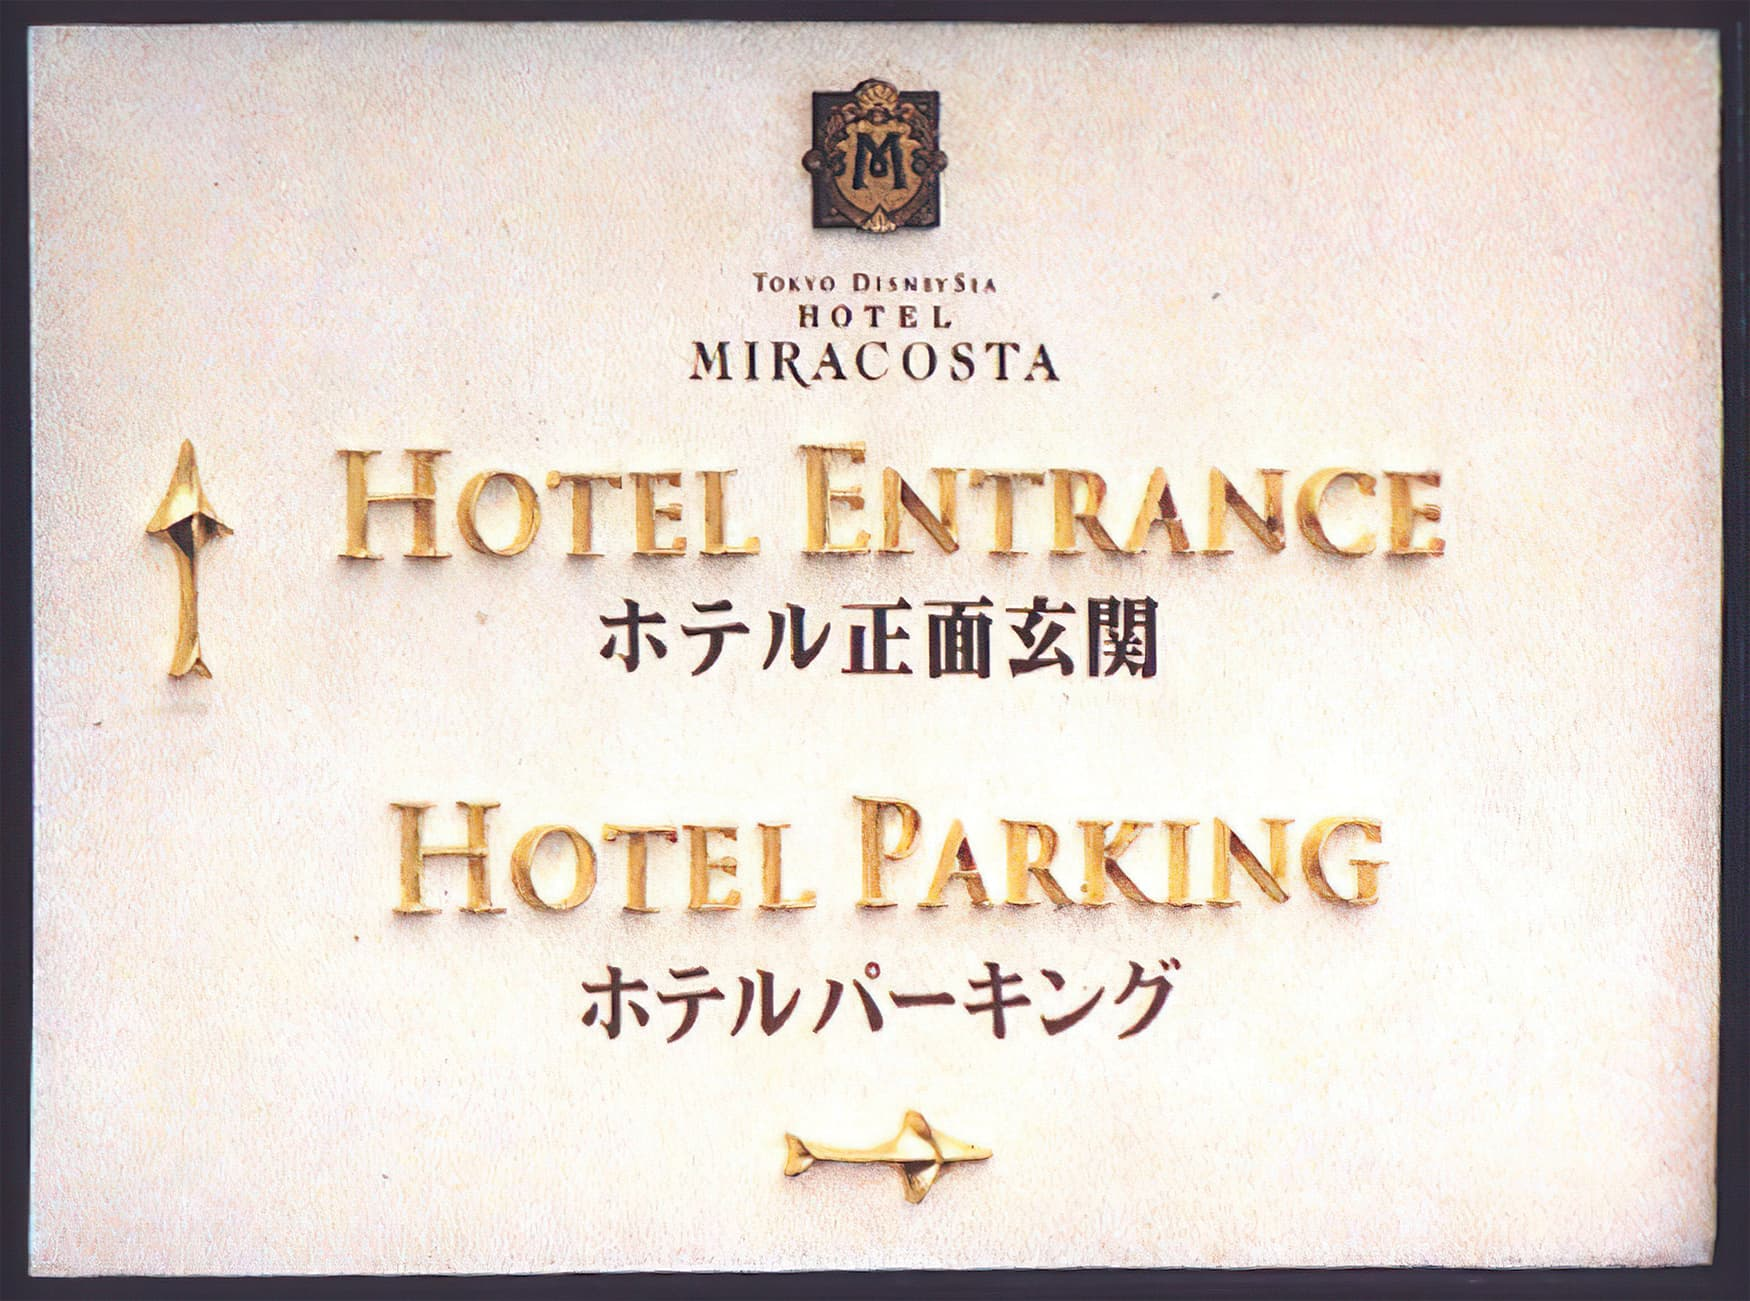 Disney Hotel Miracosta, located in Tokyo, Japan. Hospitality Design. RSM Design was commissioned to create the identity, logo, branding, and signage.